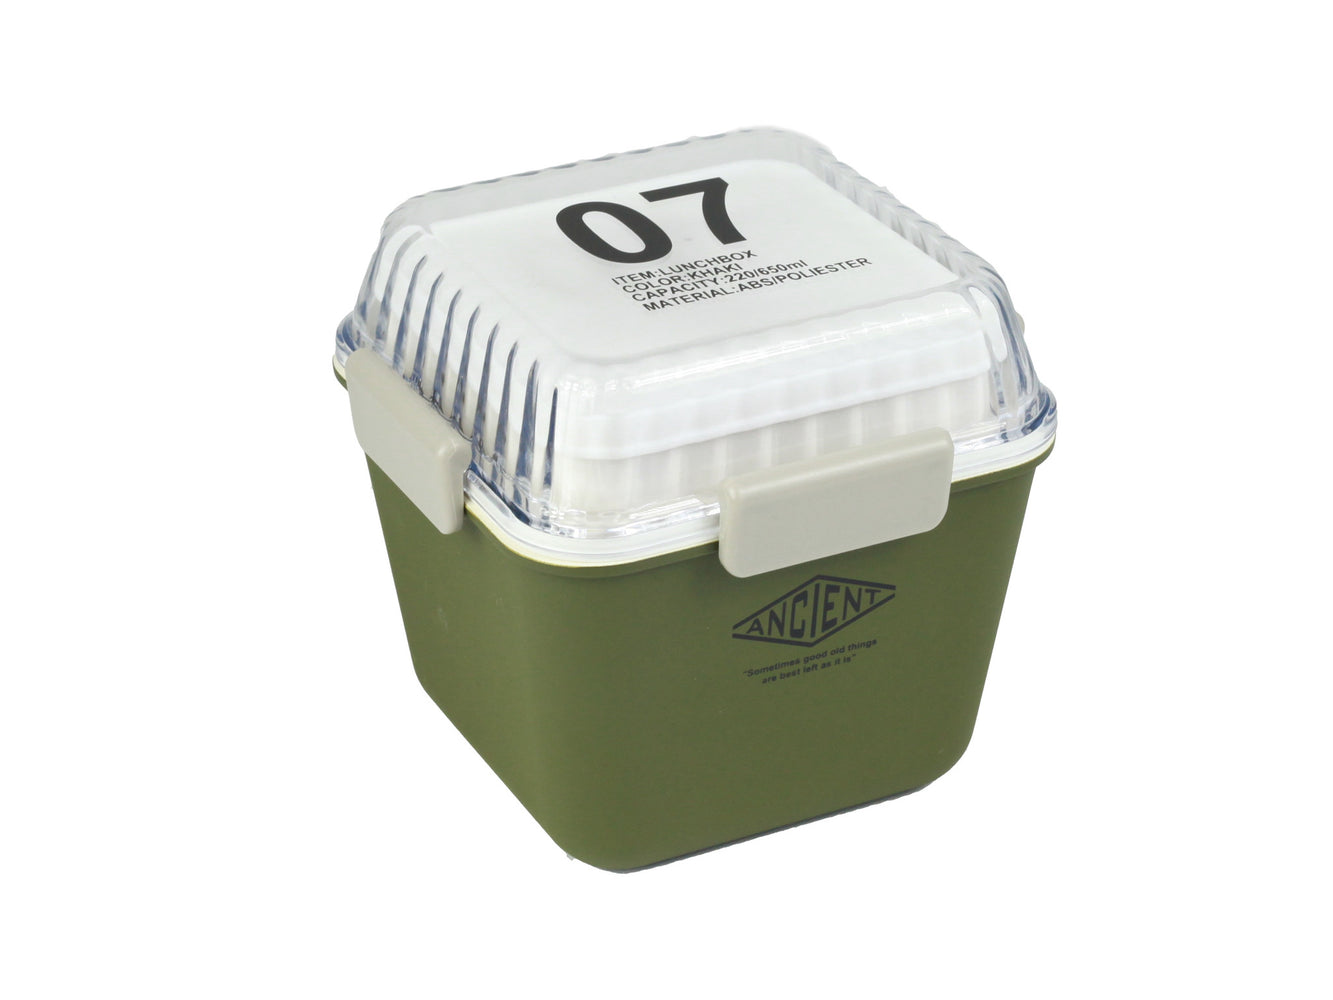 Ancient Tall Lunch Box | Army Green by Showa - Bento&con the Bento Boxes specialist from Kyoto